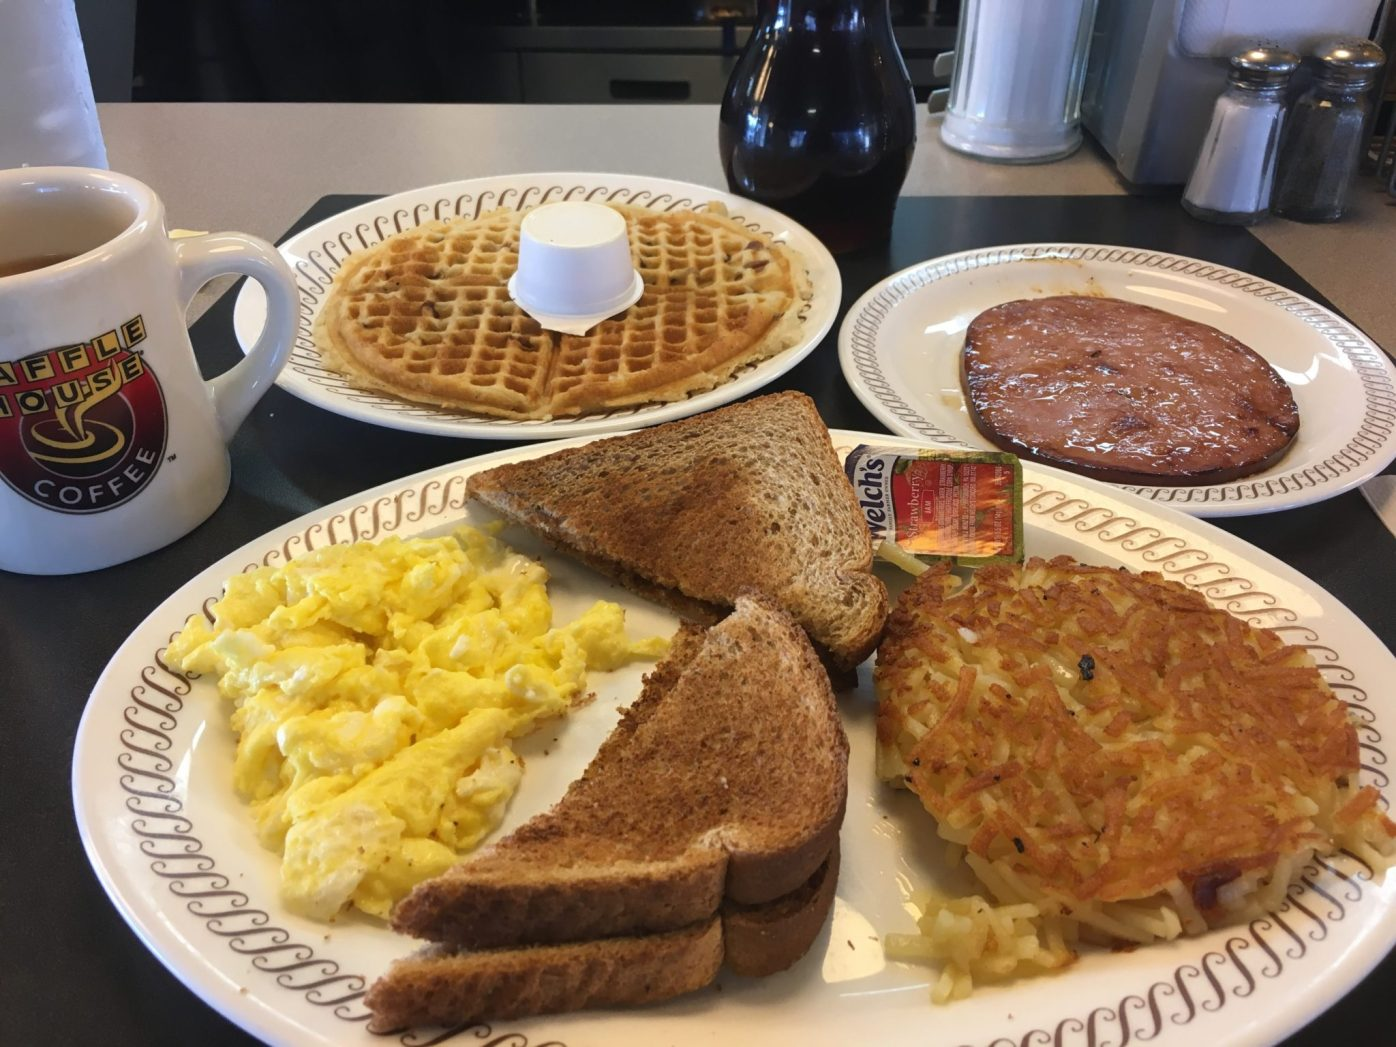 Waffle House in all its sloppy glory. Never again.